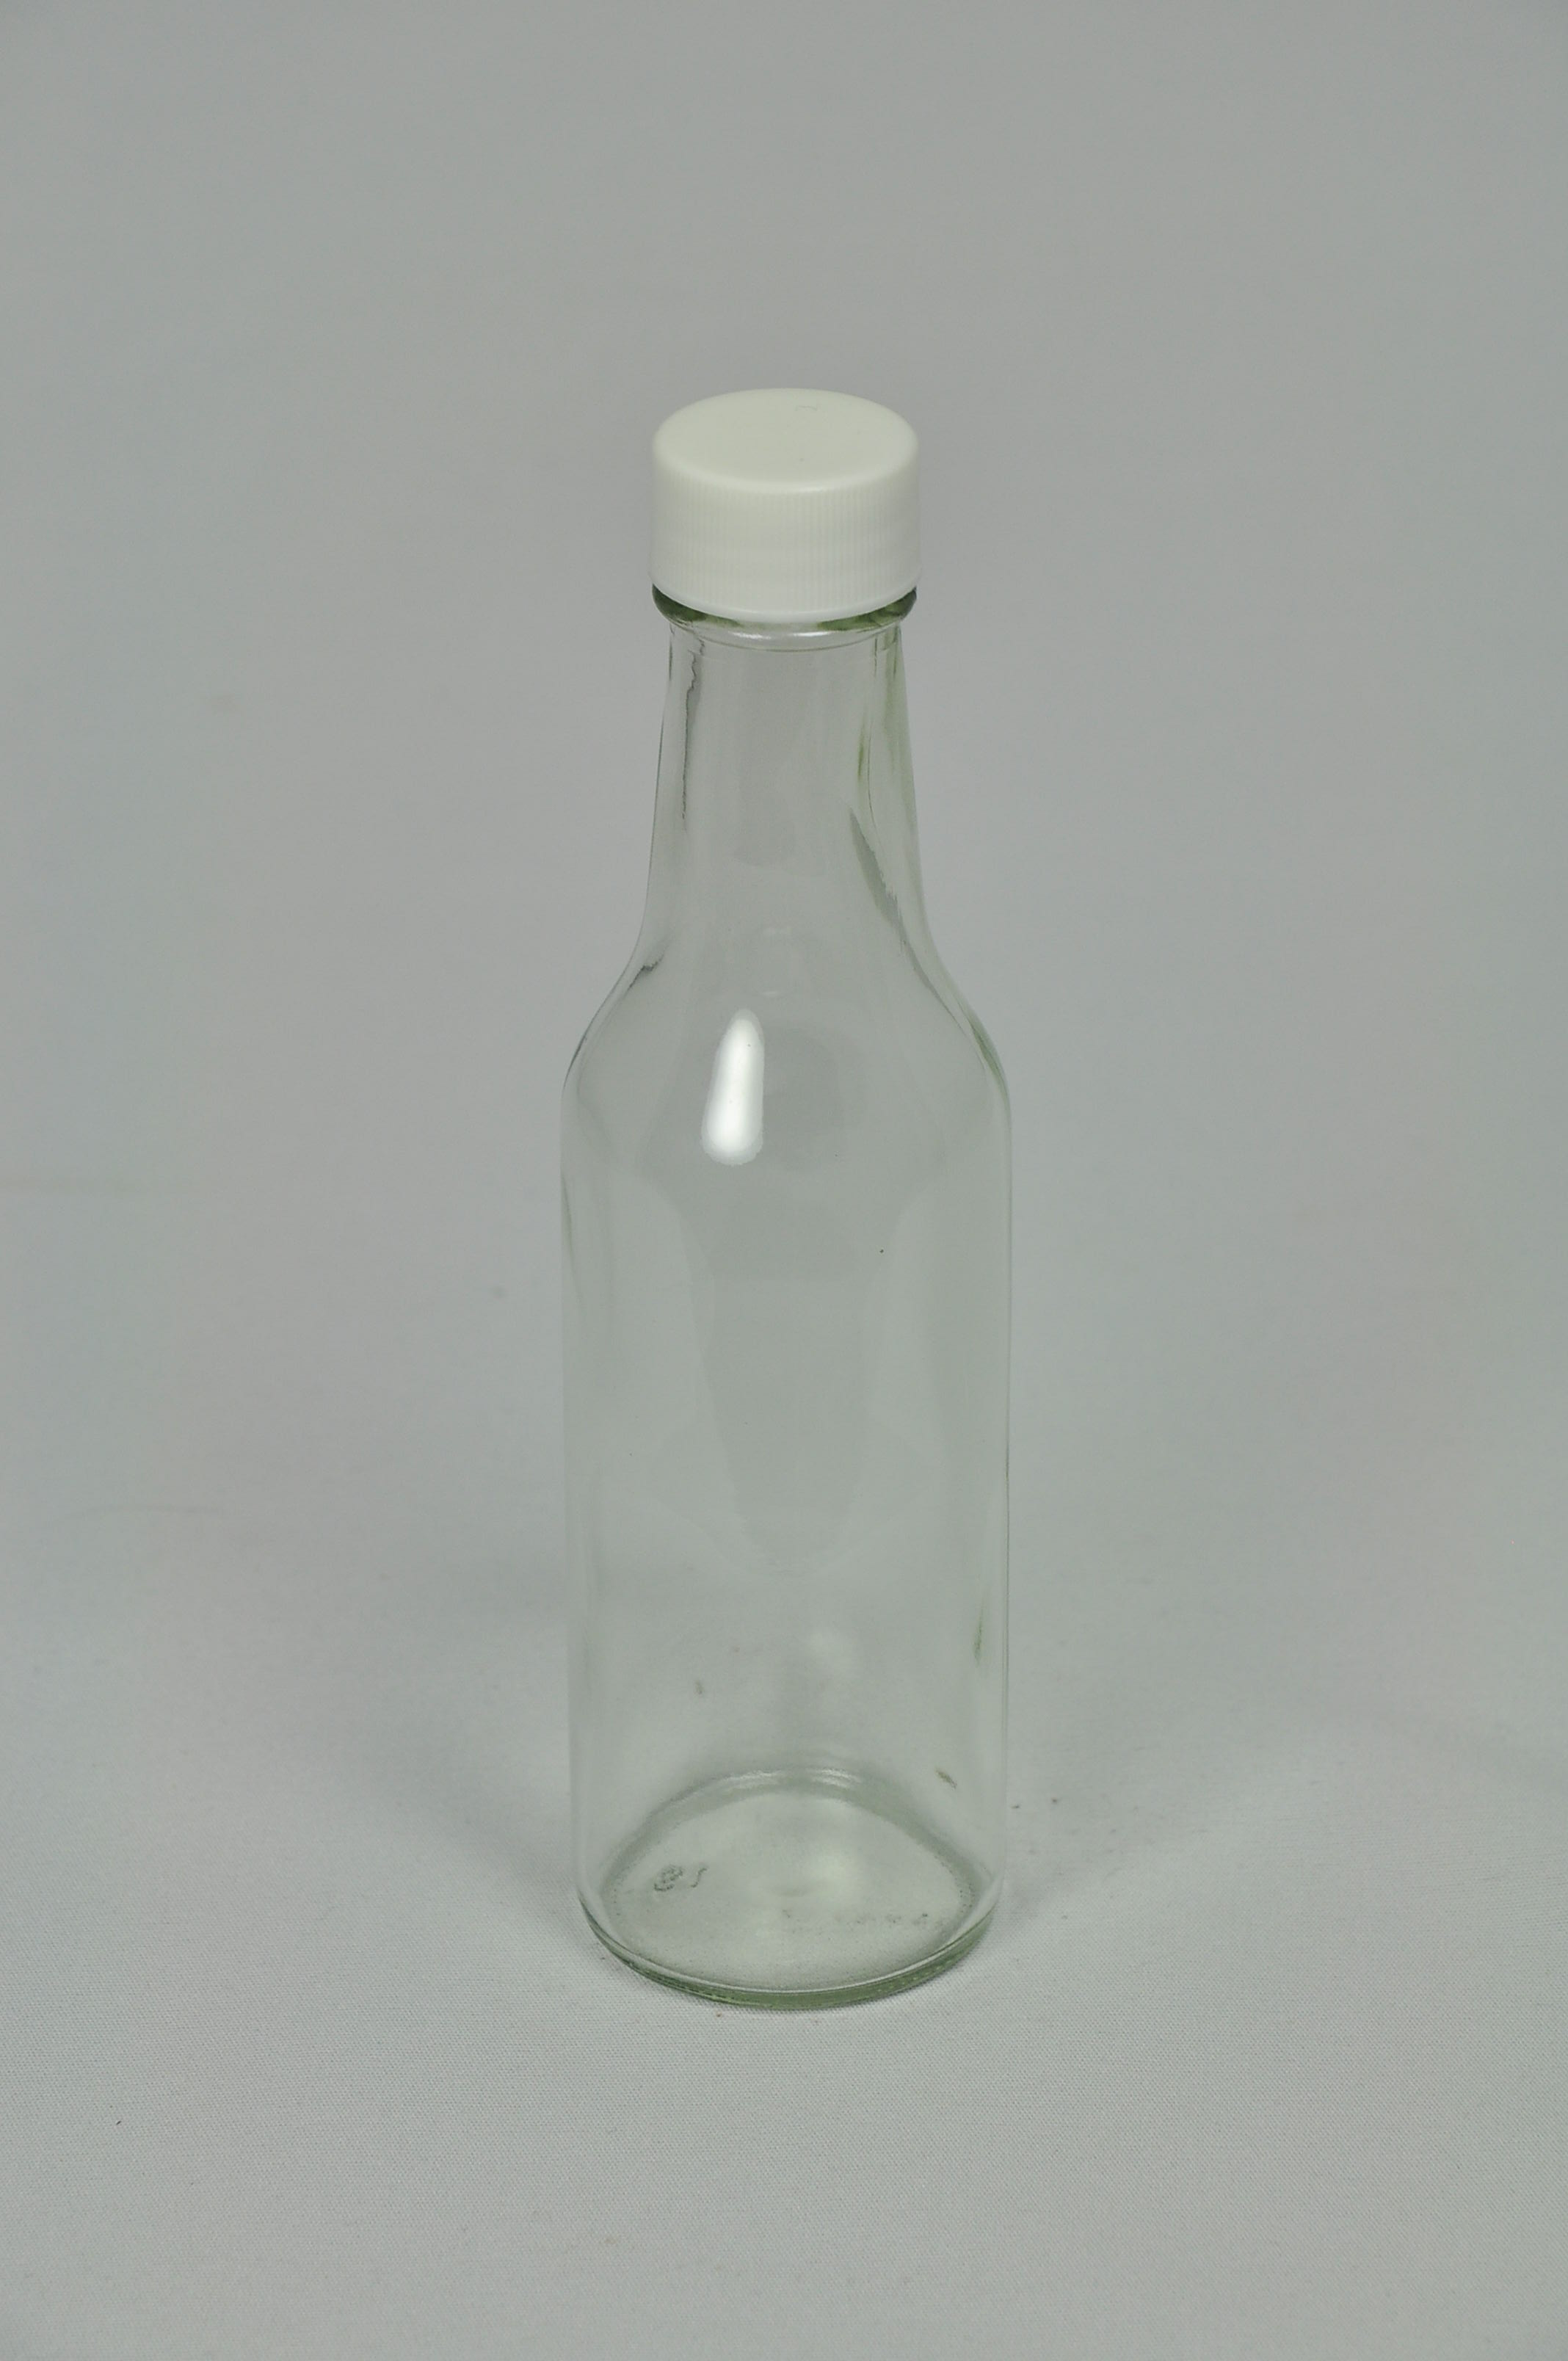 Woozy Bottle - 5oz - Comes with cap - For Vinegars, Sauces, Samplers